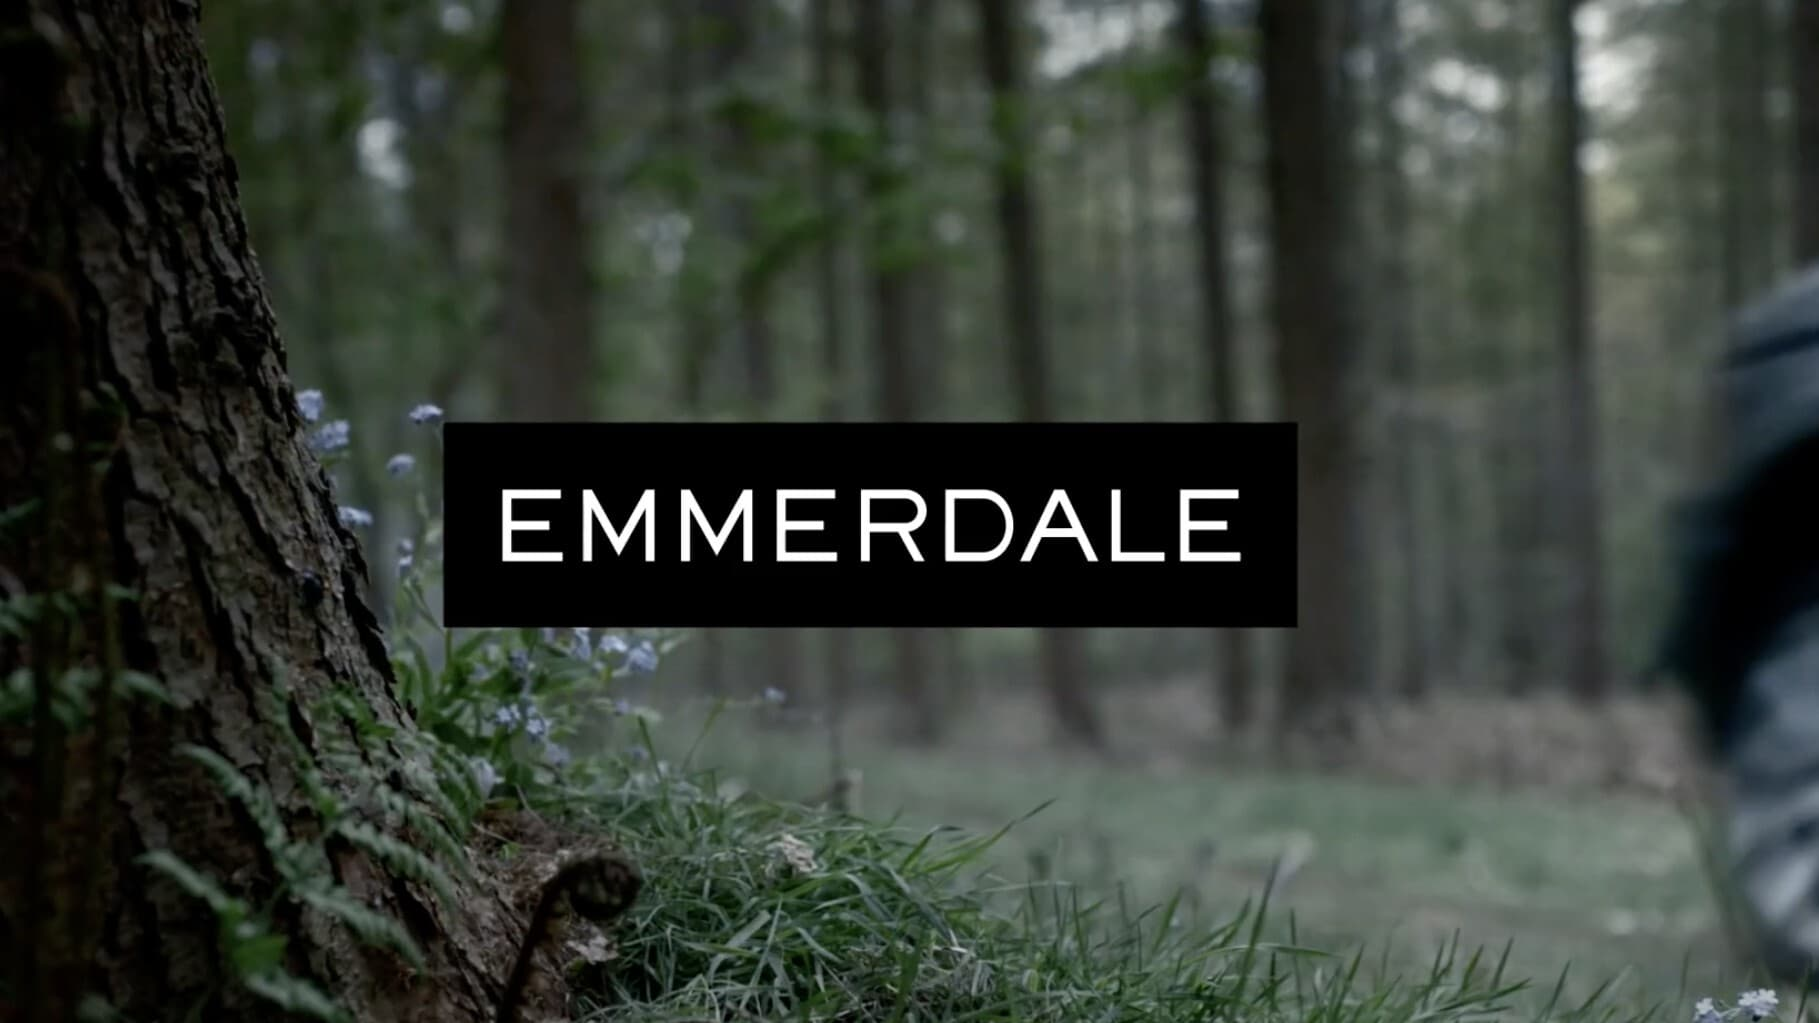 Emmerdale - Season 46 Episode 273 : Thursday 31st October 2019 (Part 1)